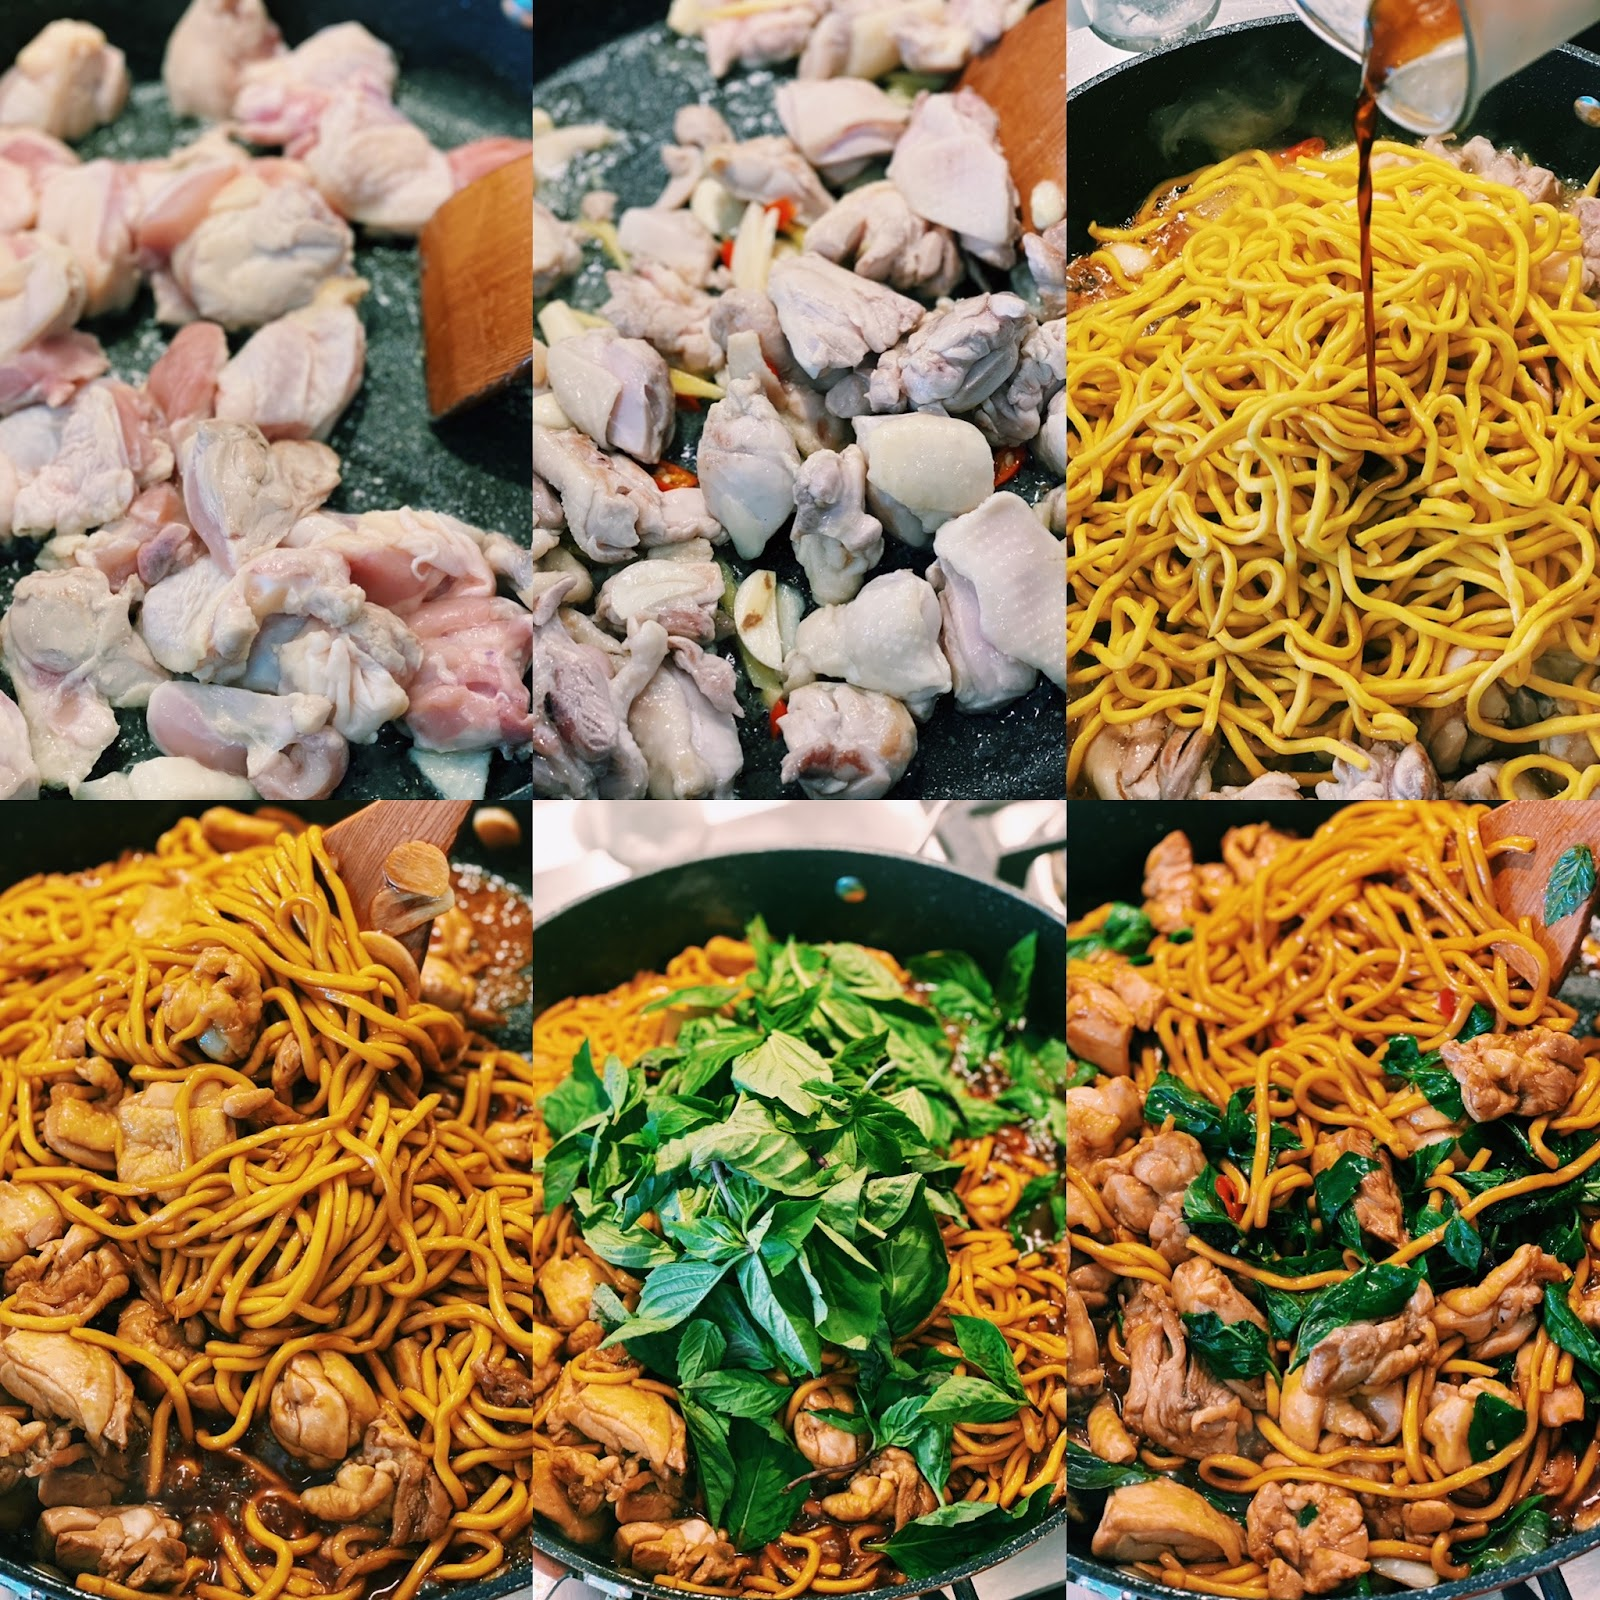 How to make Chicken Noodle stir-fry